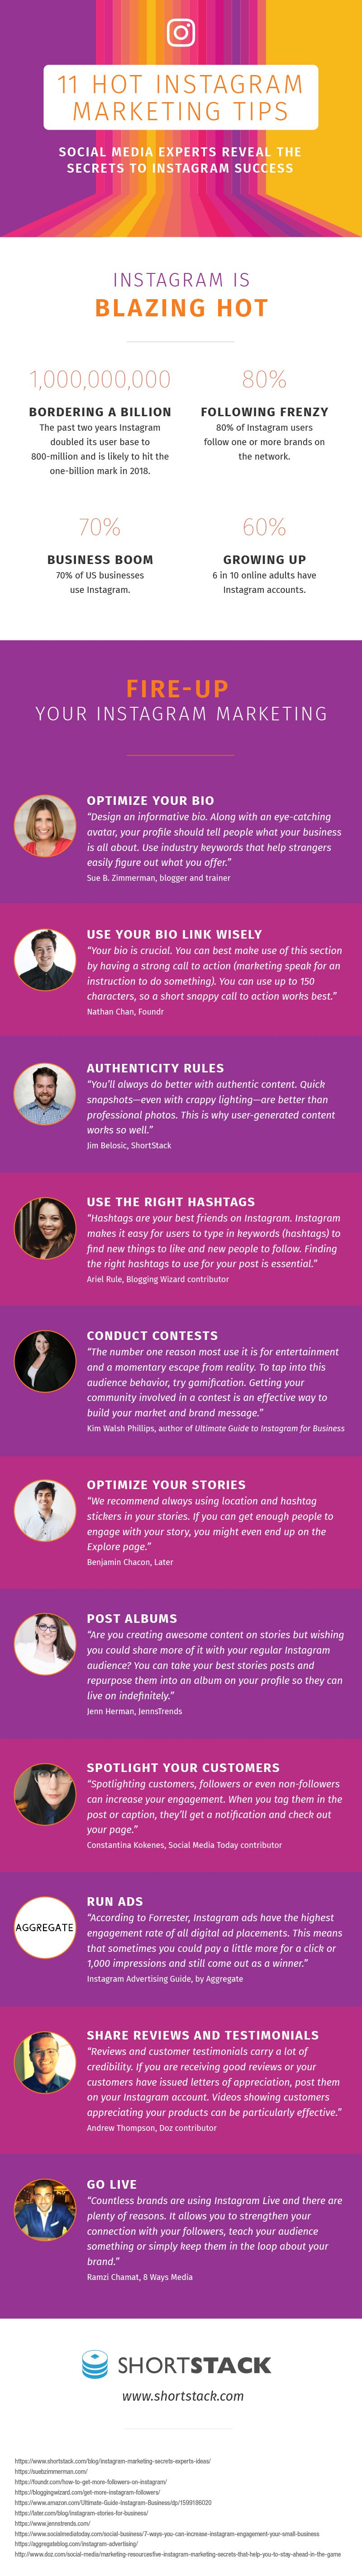 Instagram Marketing Tips from the Experts, infographic